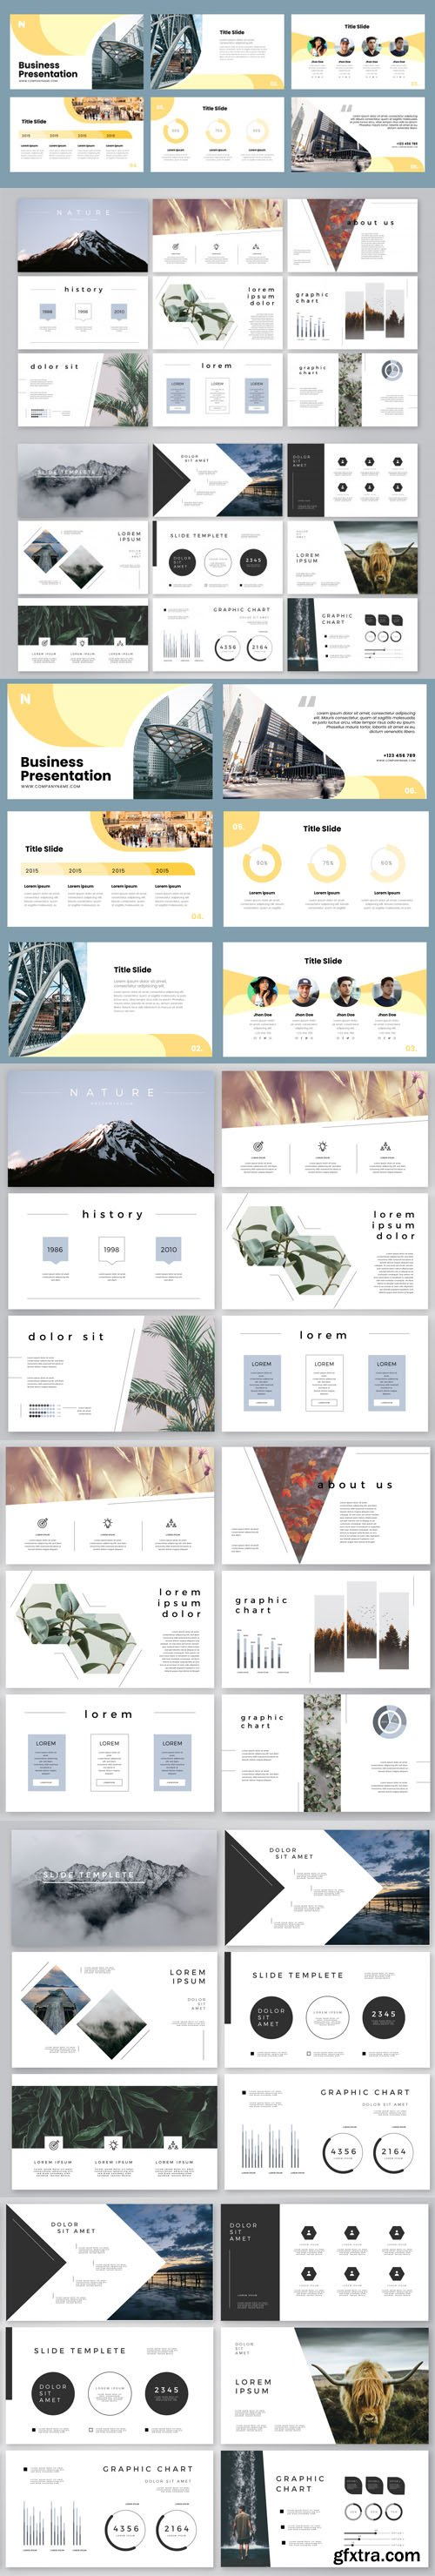 24 Business Presentation Slides Vectors Templates